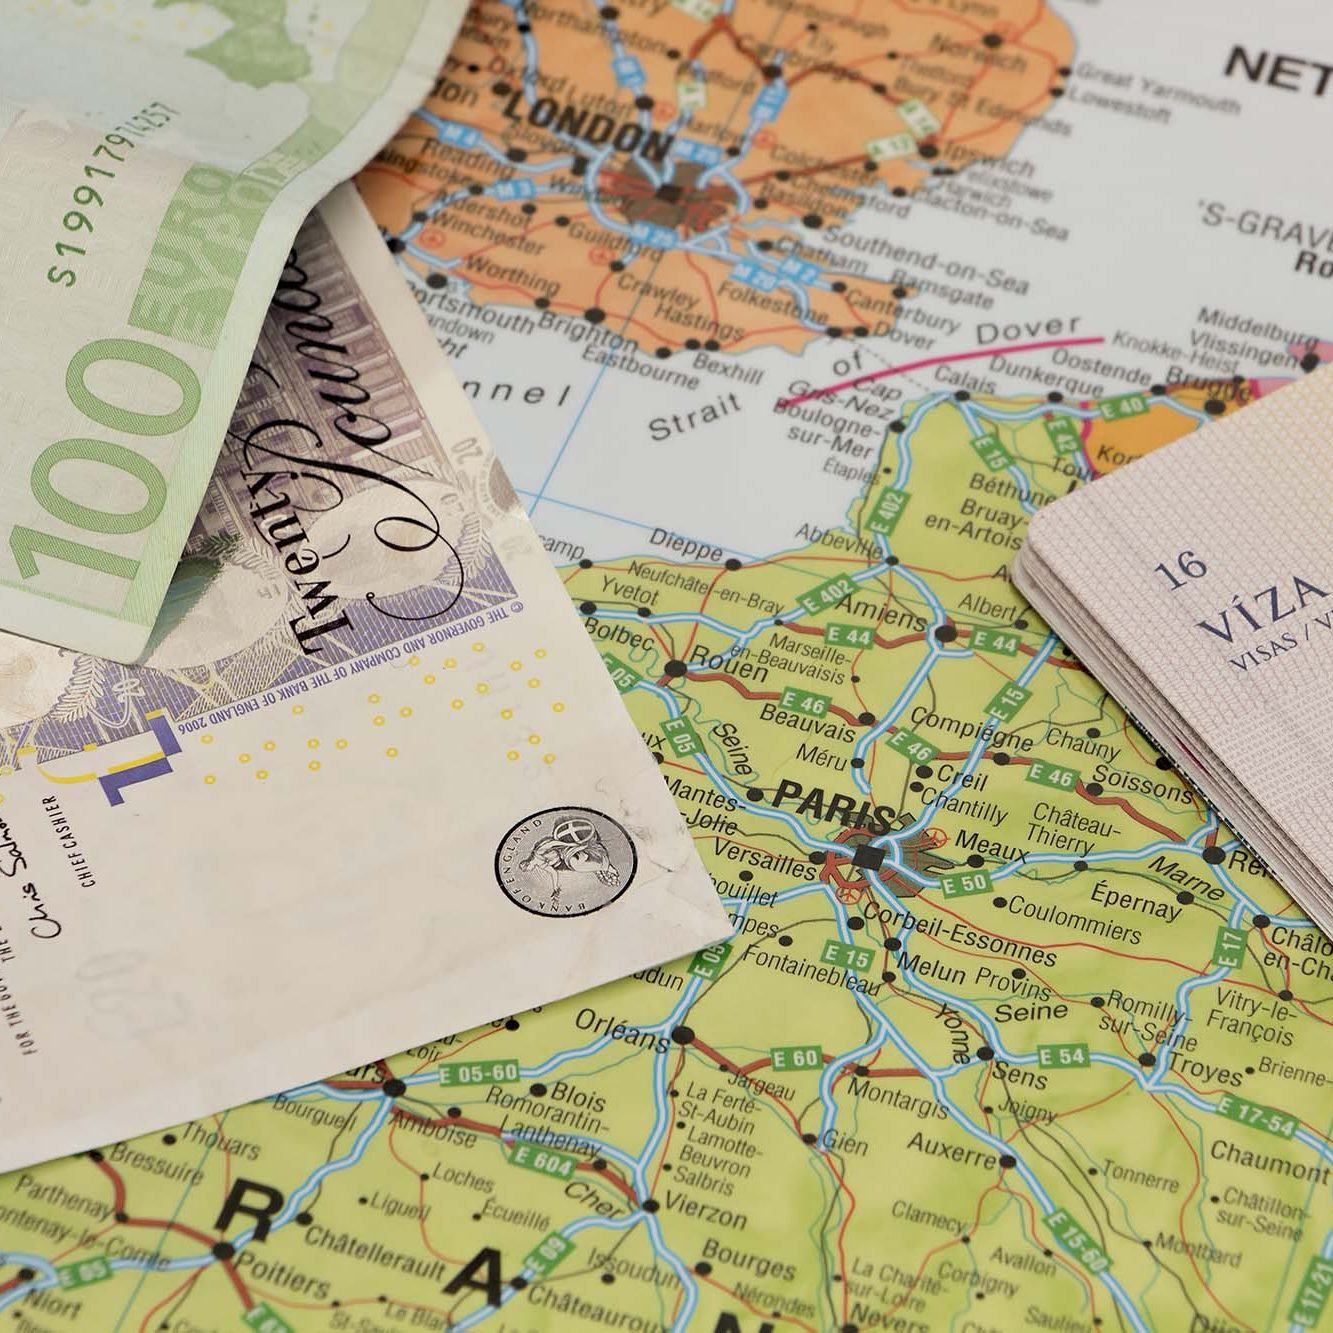 Passport and money sitting on a map showing Paris & London